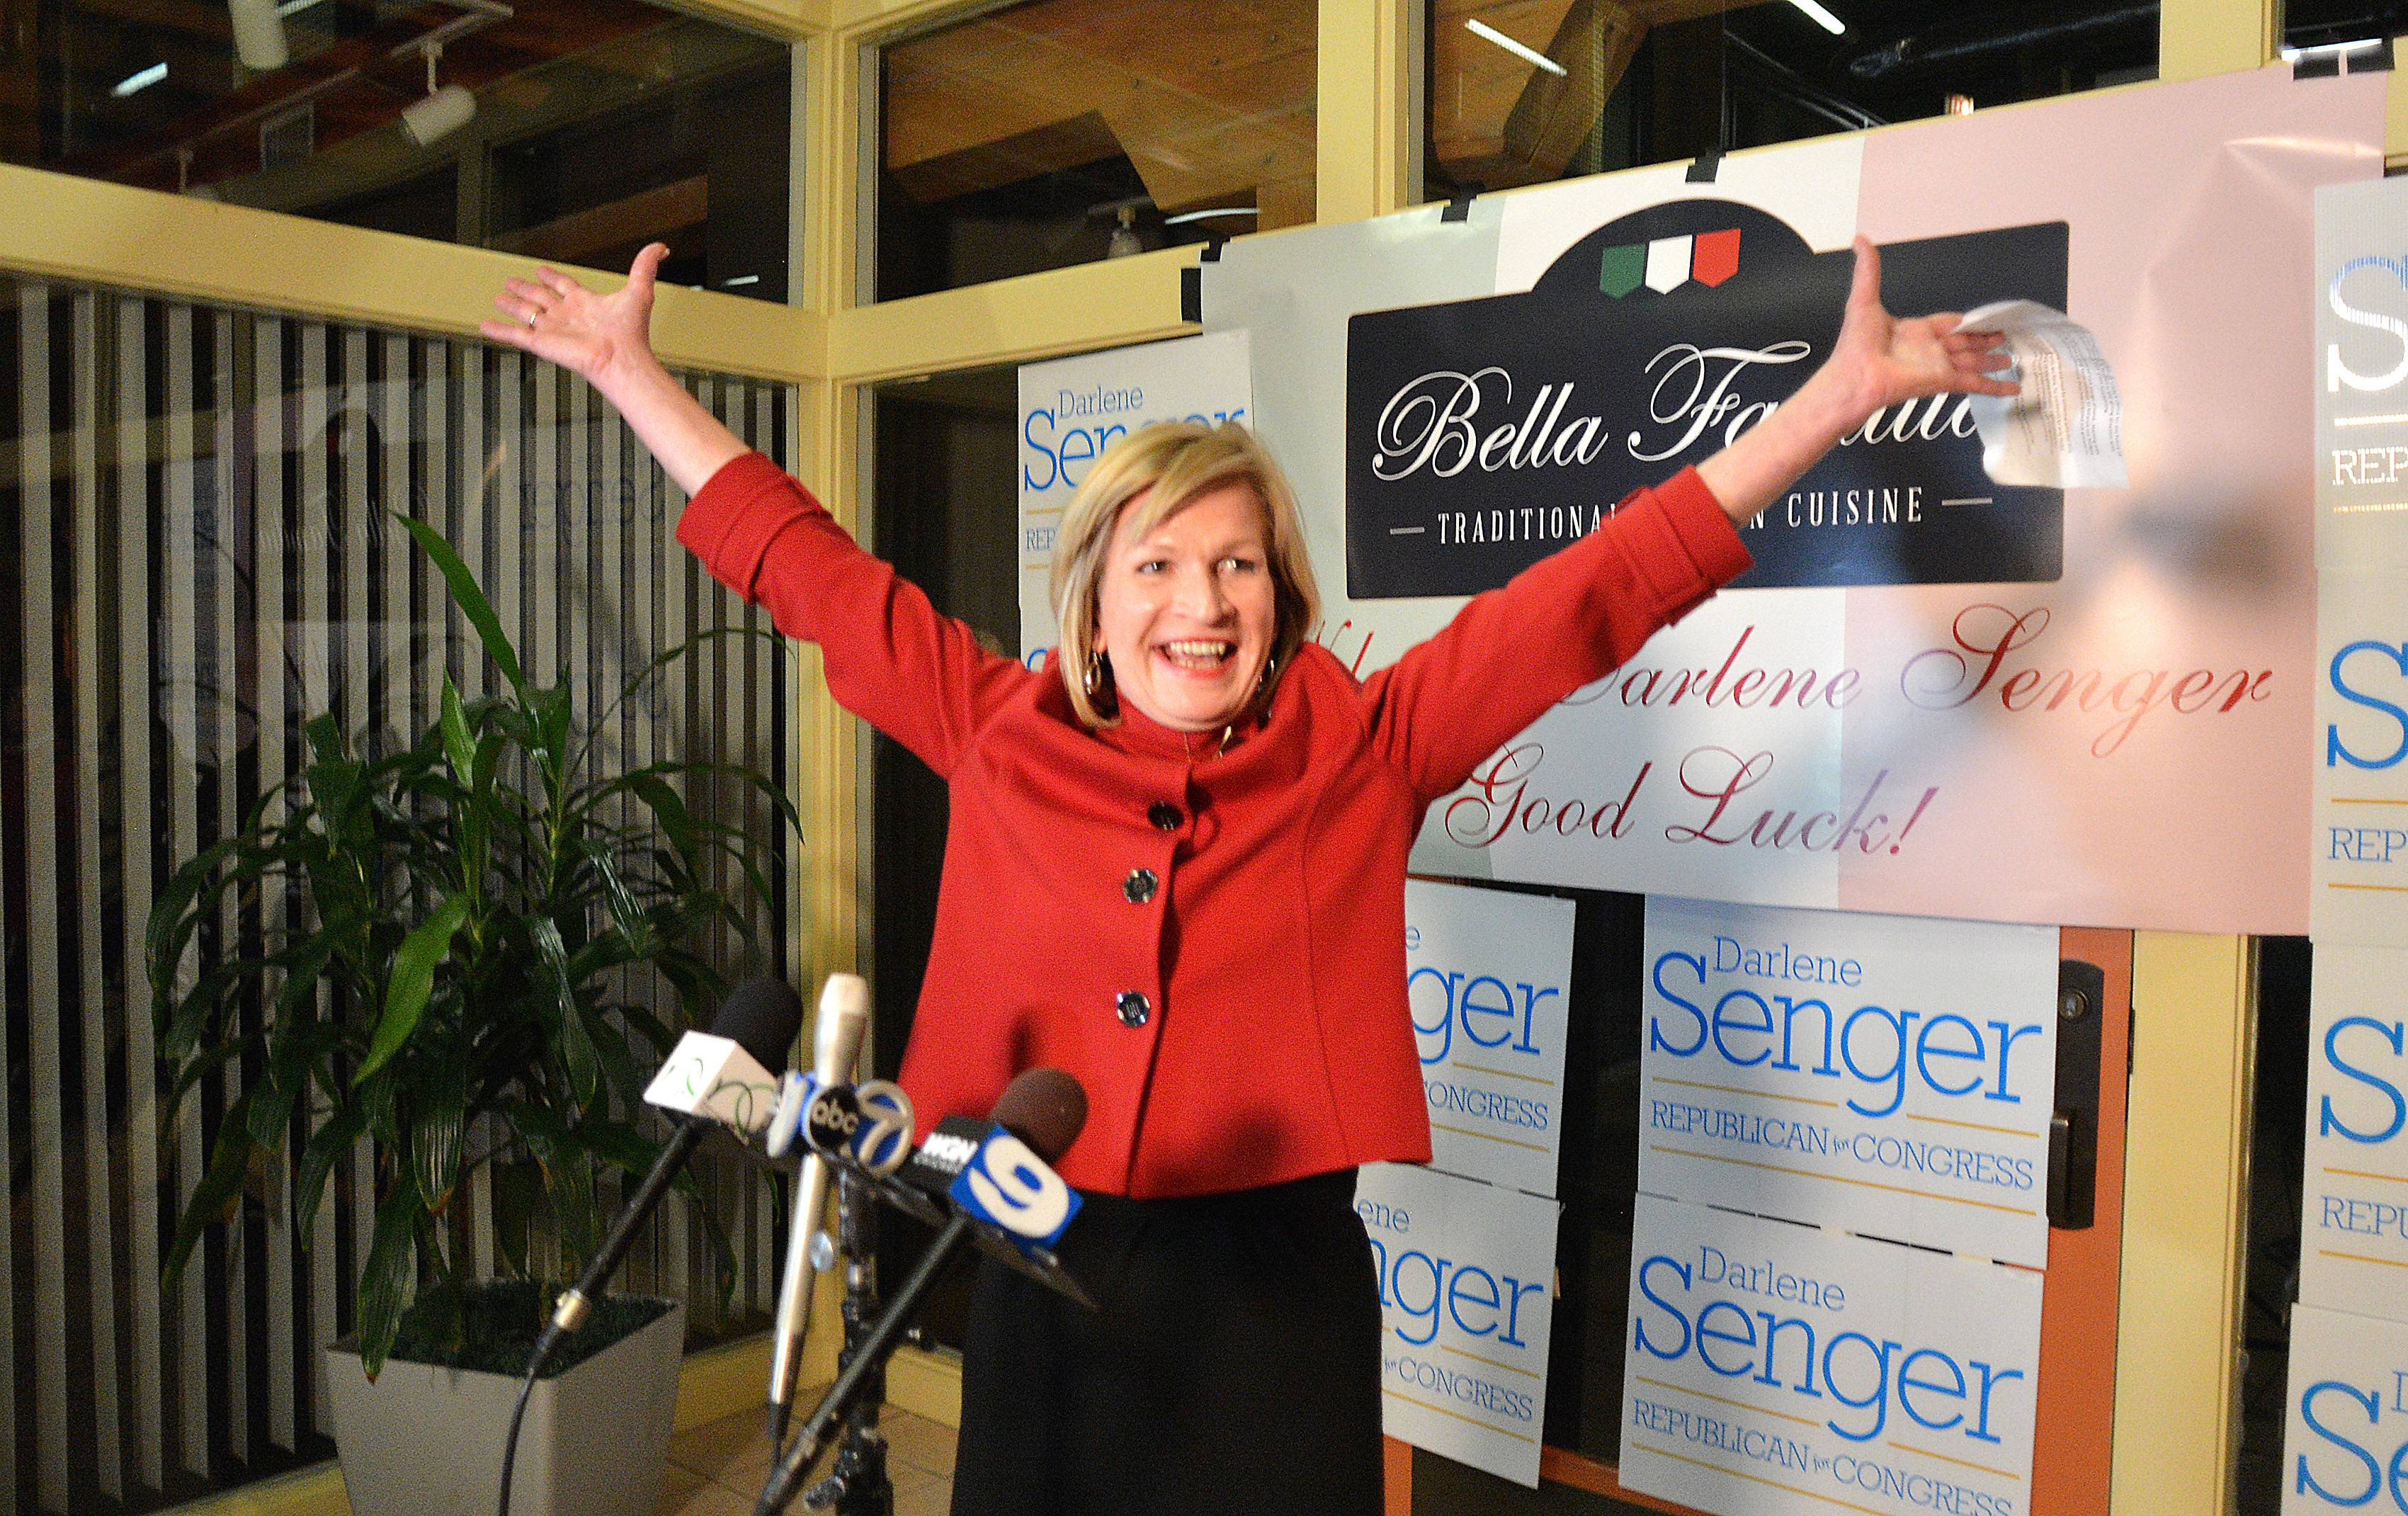 Darlene Senger of Naperville celebrates Tuesday night after winning the Republican nomination in the 11th Congressional District. She'll move on to face Democratic incumbent Bill Foster in the general election.